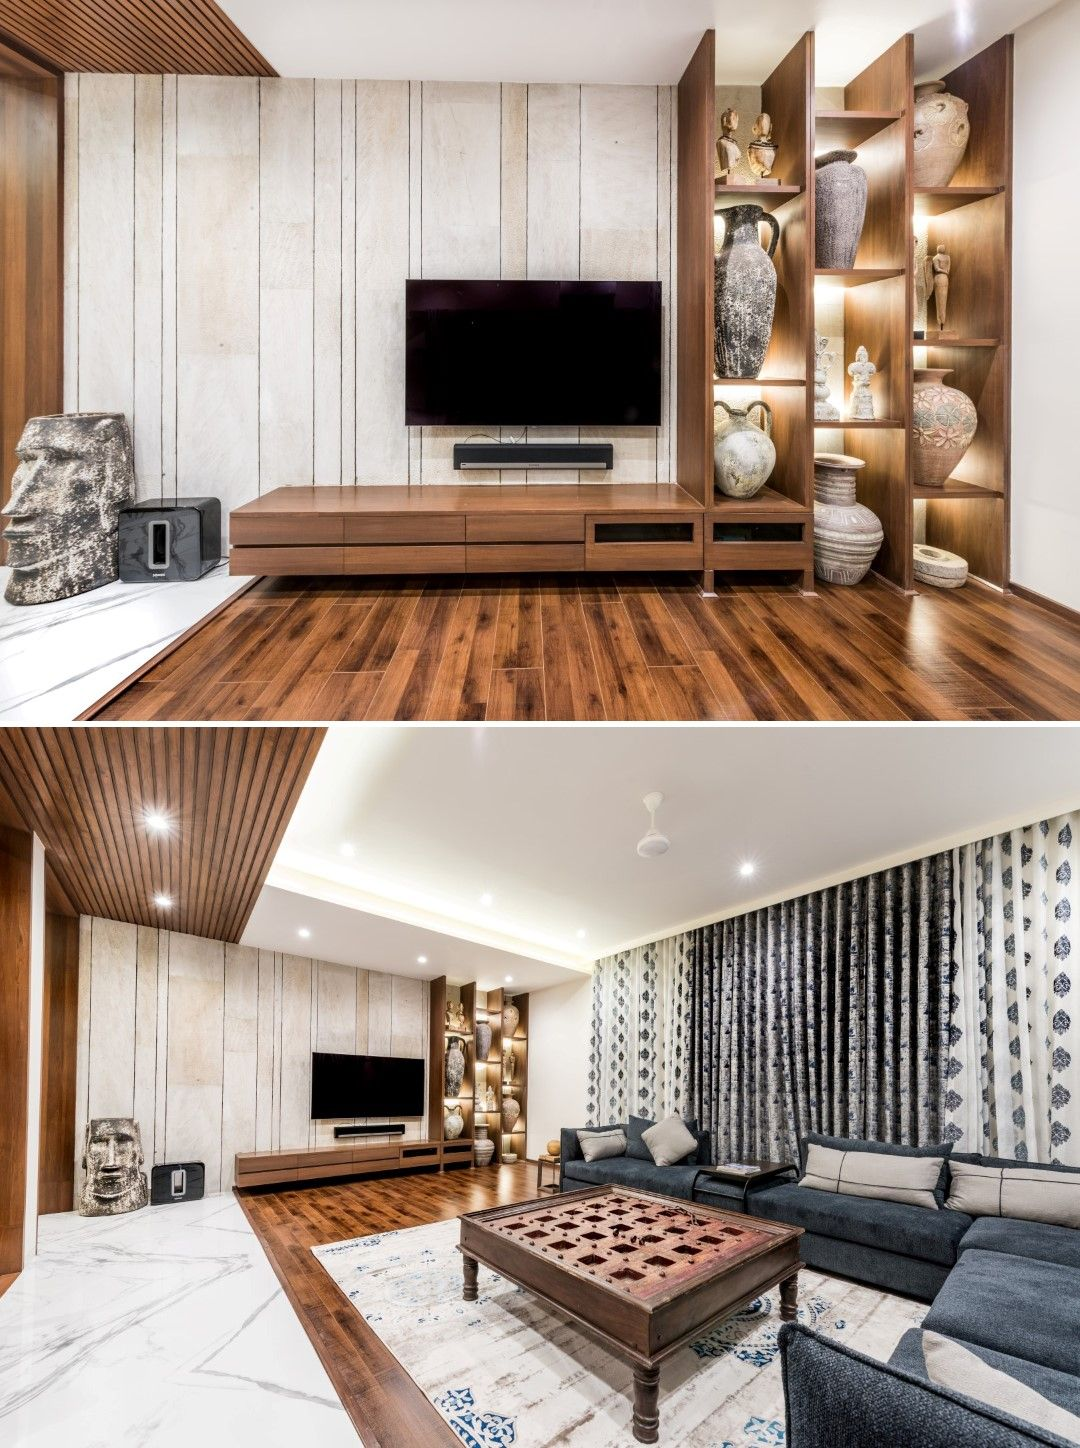 Luxurious Penthouse Interior Design Is A Showcase Of The Bond